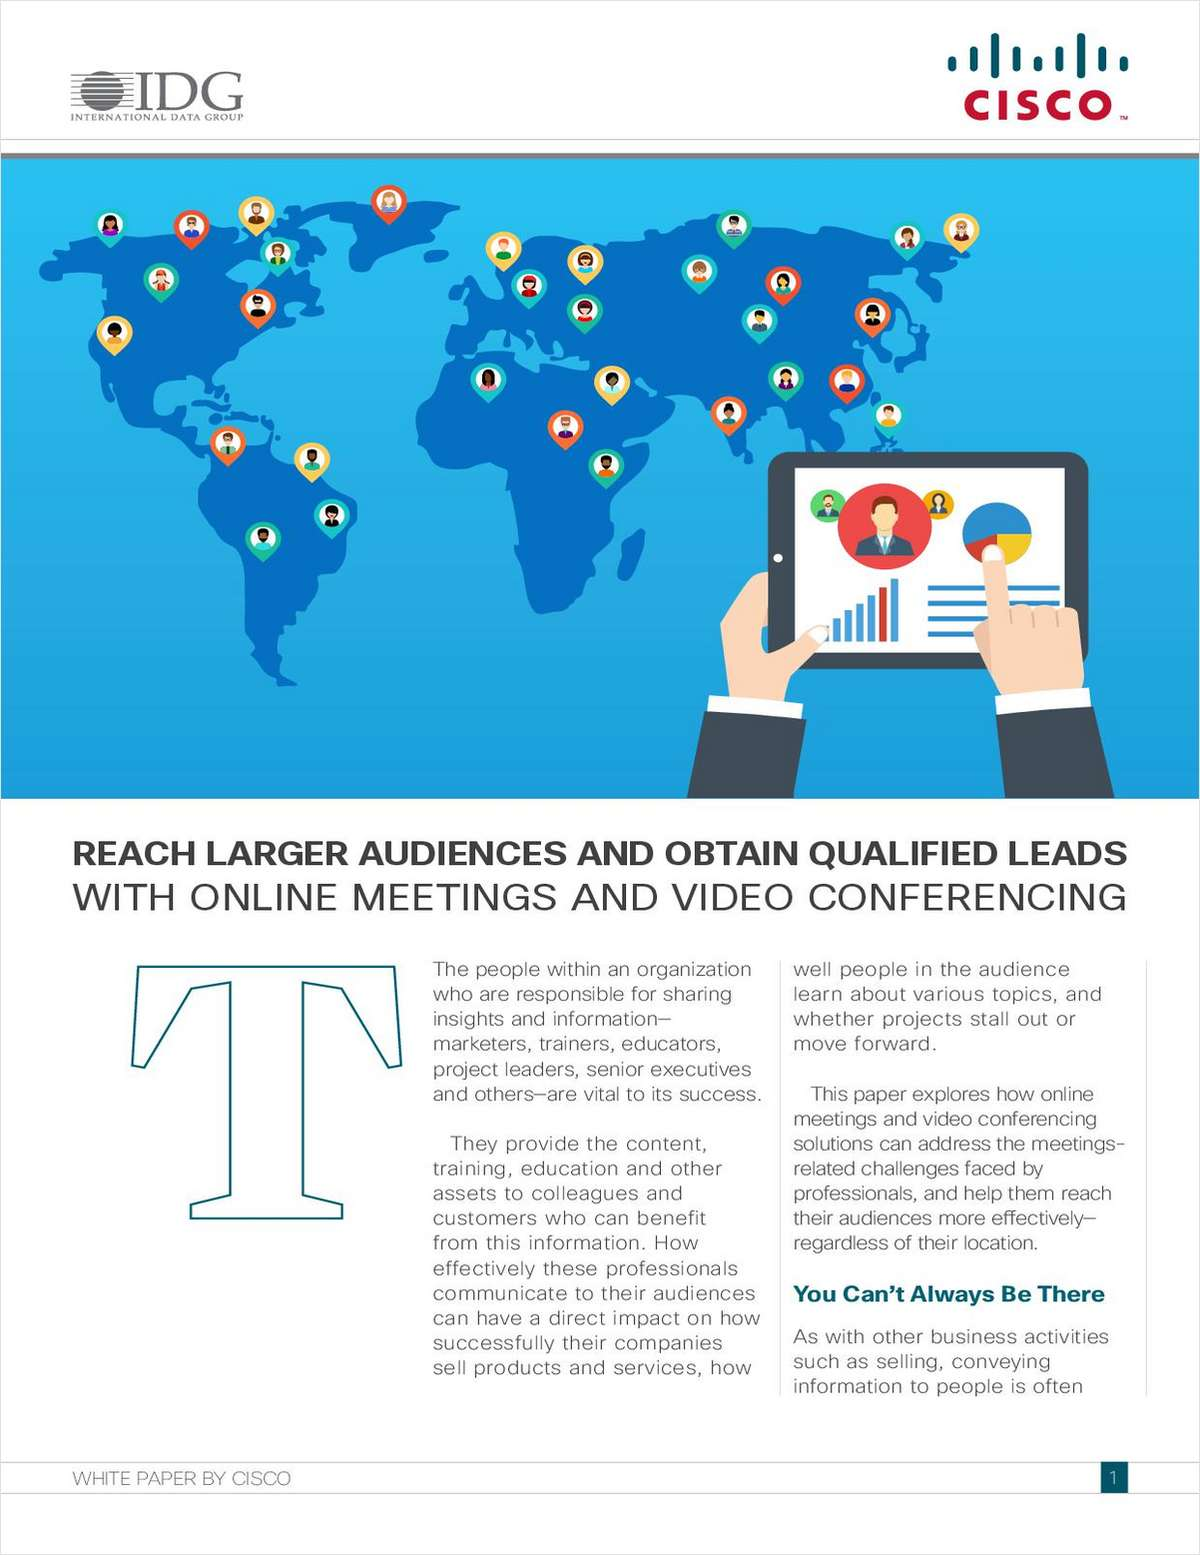 Reach Larger Audiences and Obtain Qualified Leads with Online Meetings and Video Conferencing